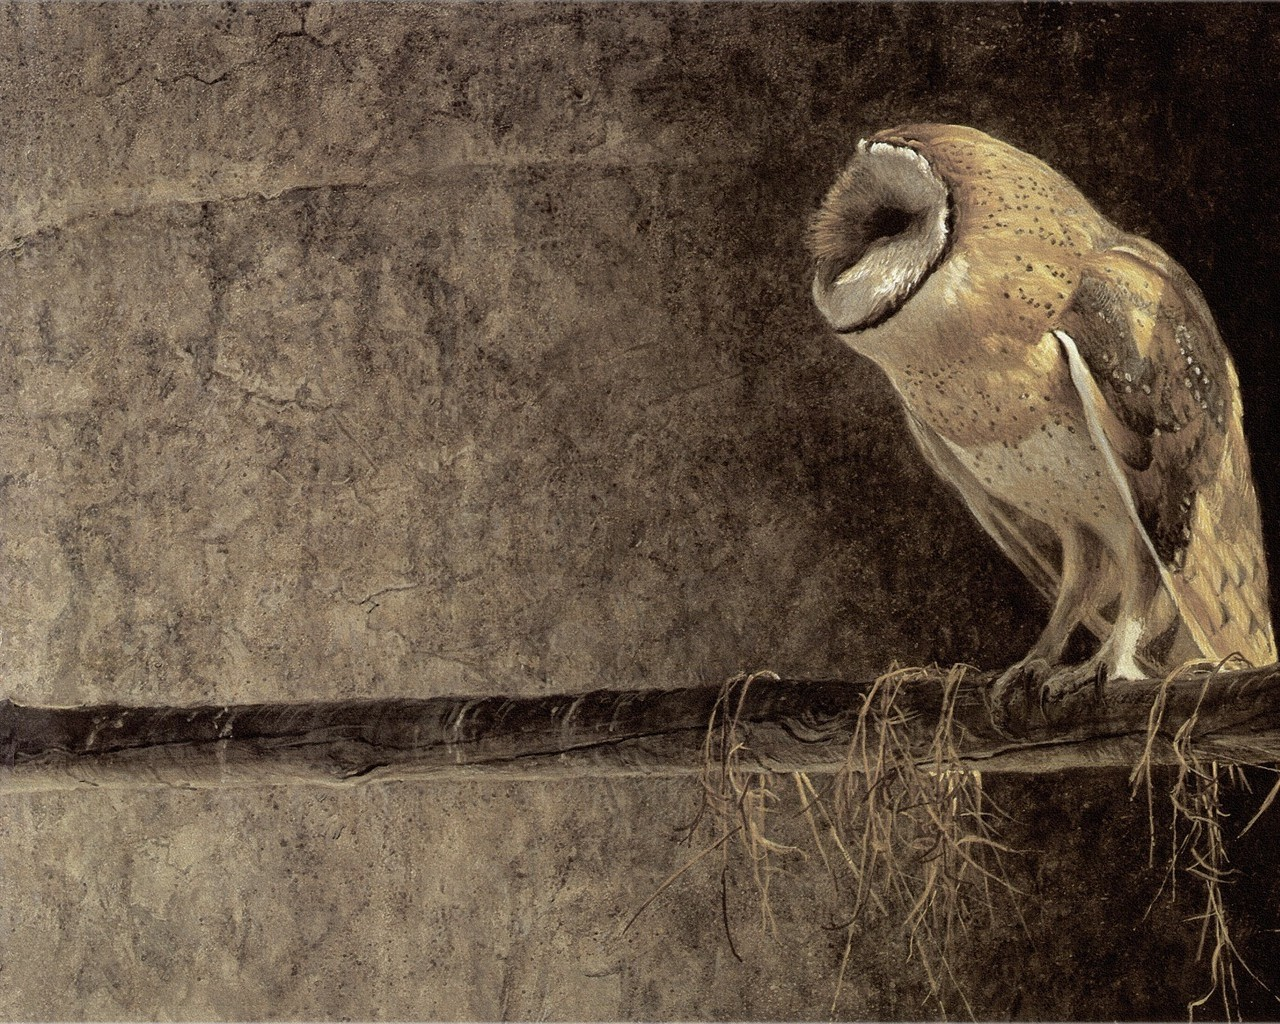 Download mobile wallpaper Owl, Animals, Birds for free.